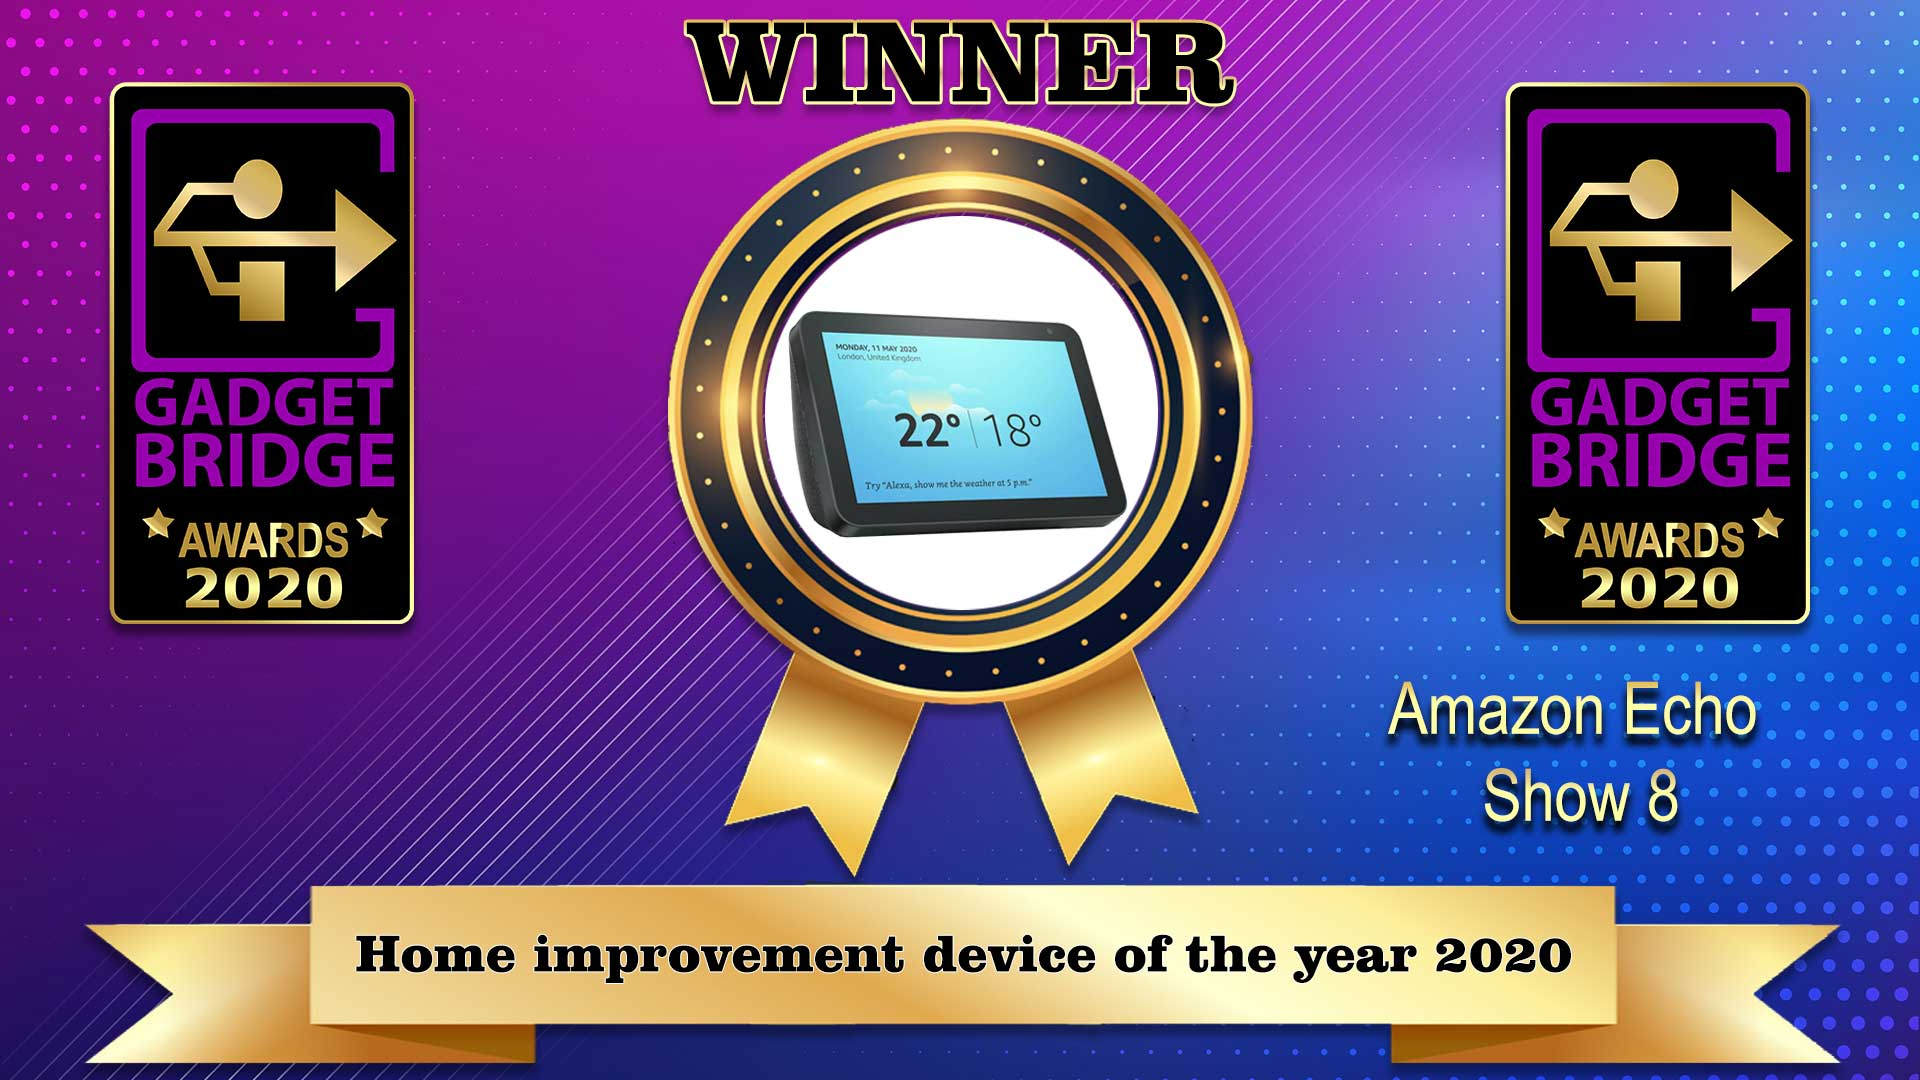 Home-improvement-device-of-the-year-2020